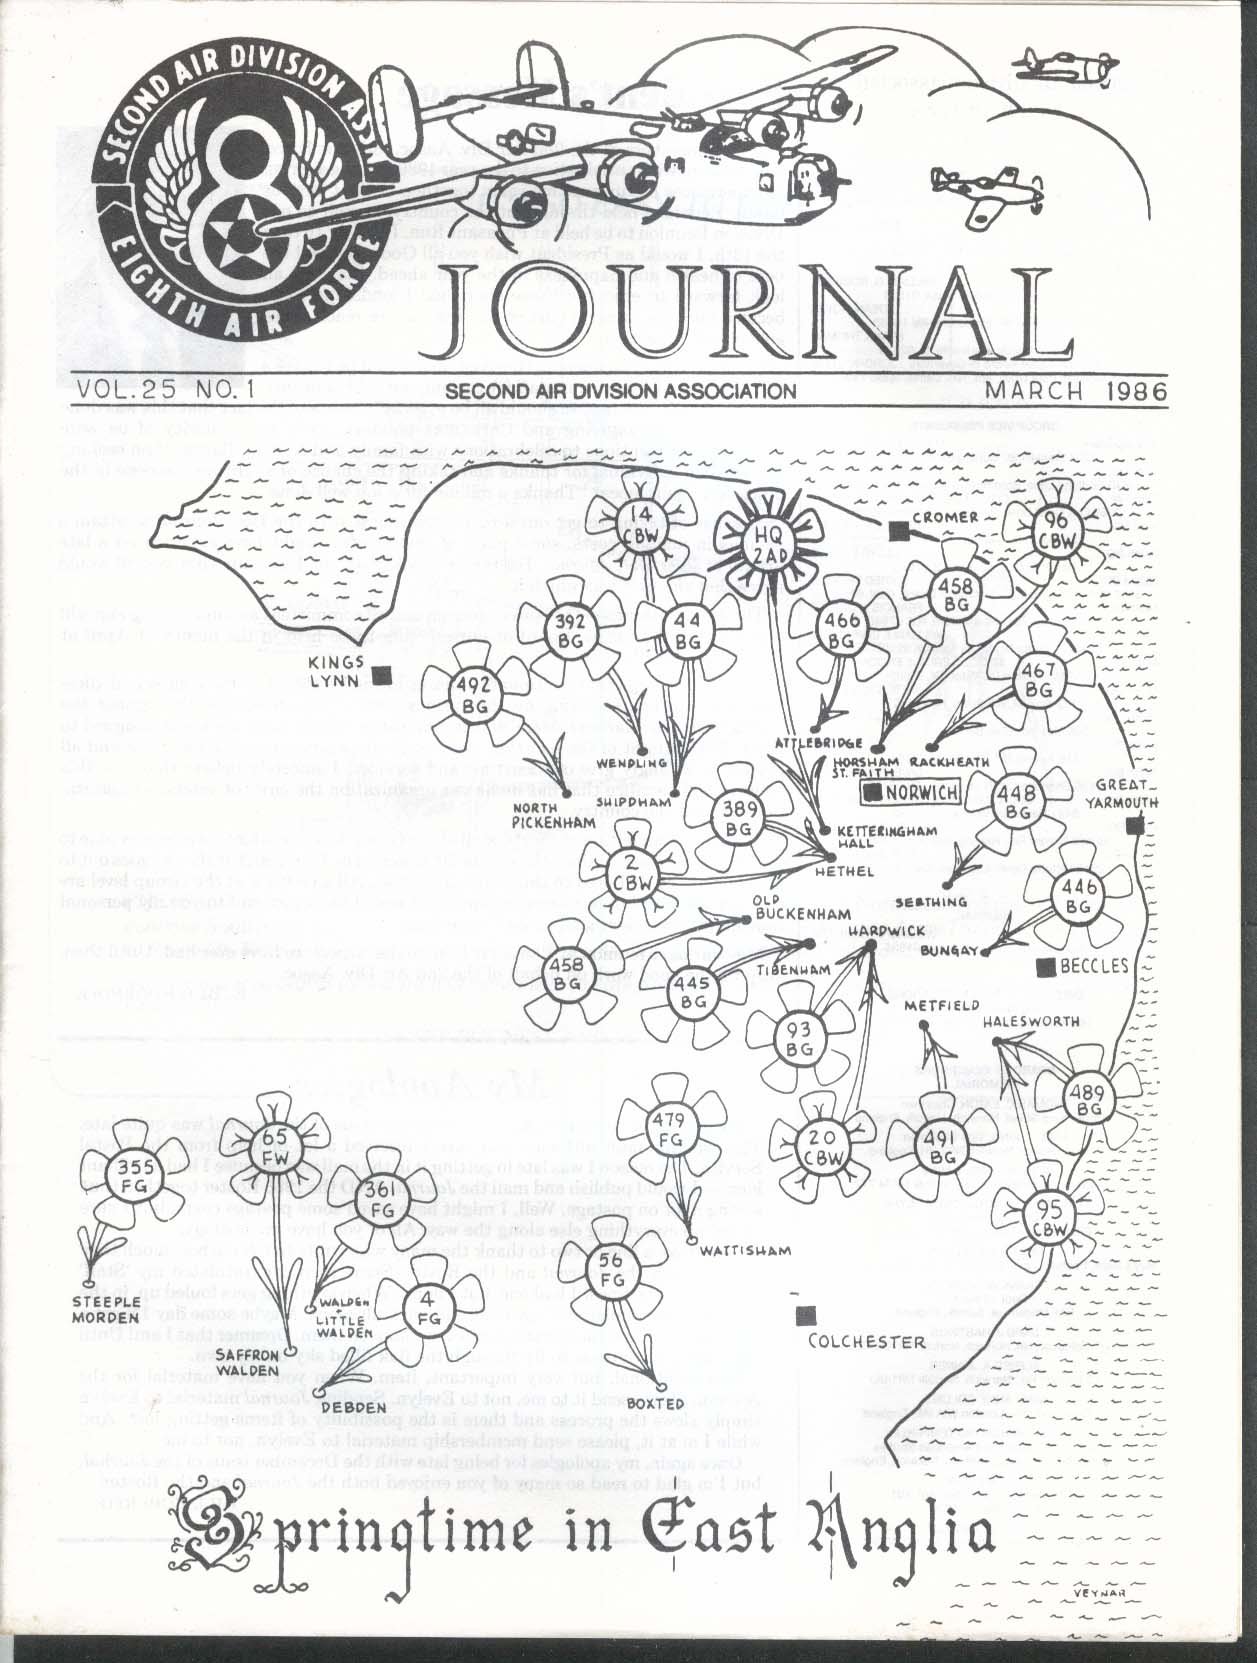 2nd Air Division Journal 8th Air Force Vol 25 #1 East Anglia 3 1986